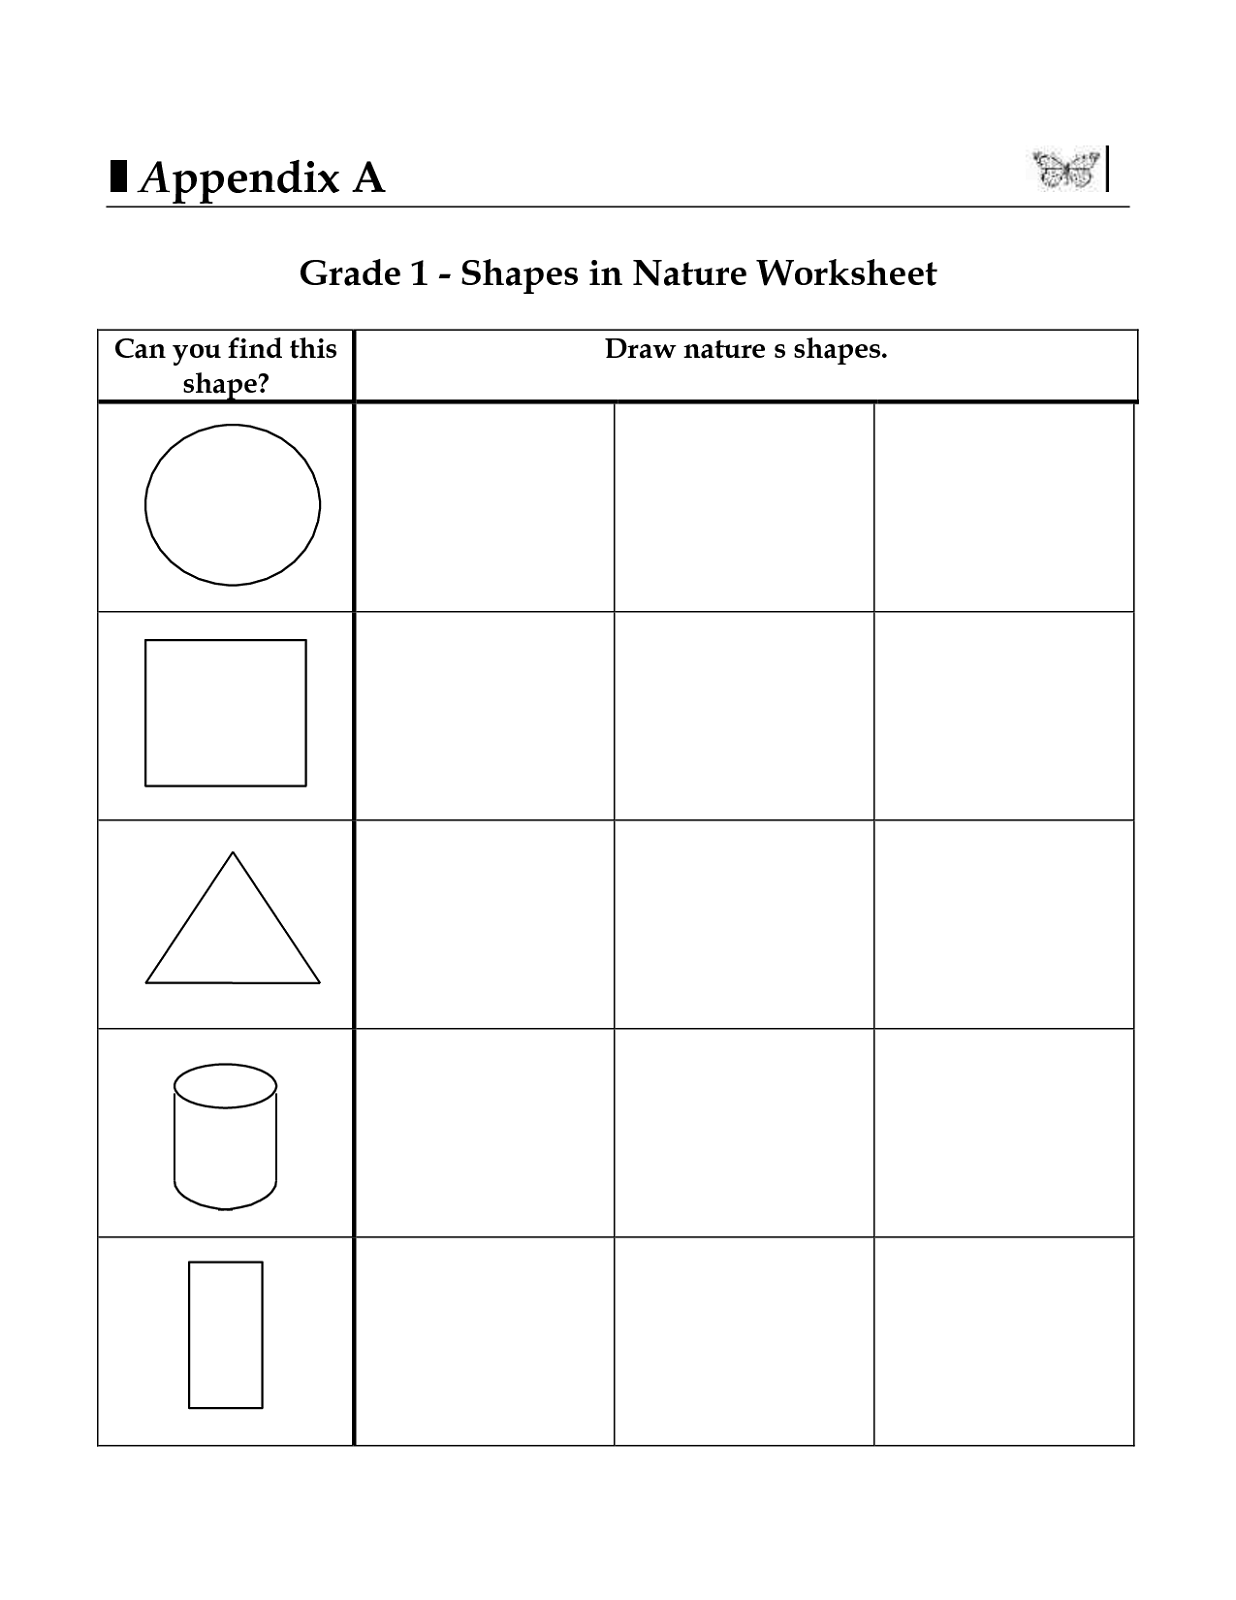 Grade 1 Worksheets For Learning Activity In